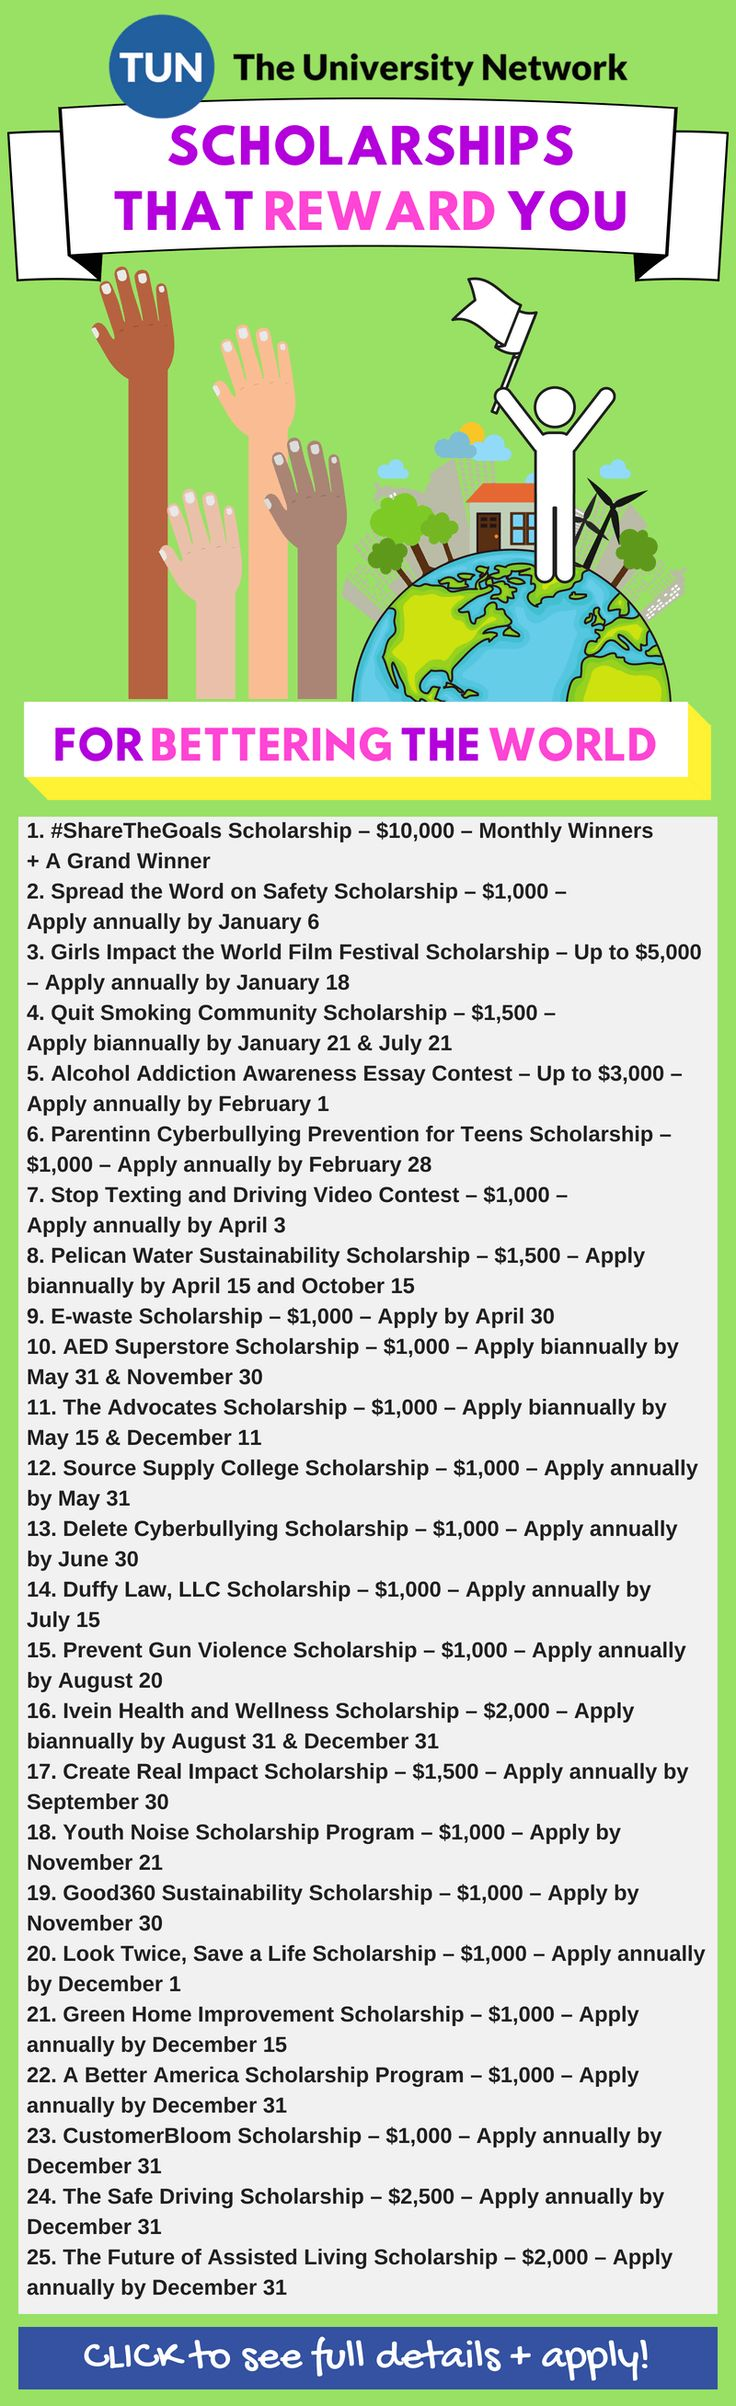 #scholarships #scholarships #incentive #details #college